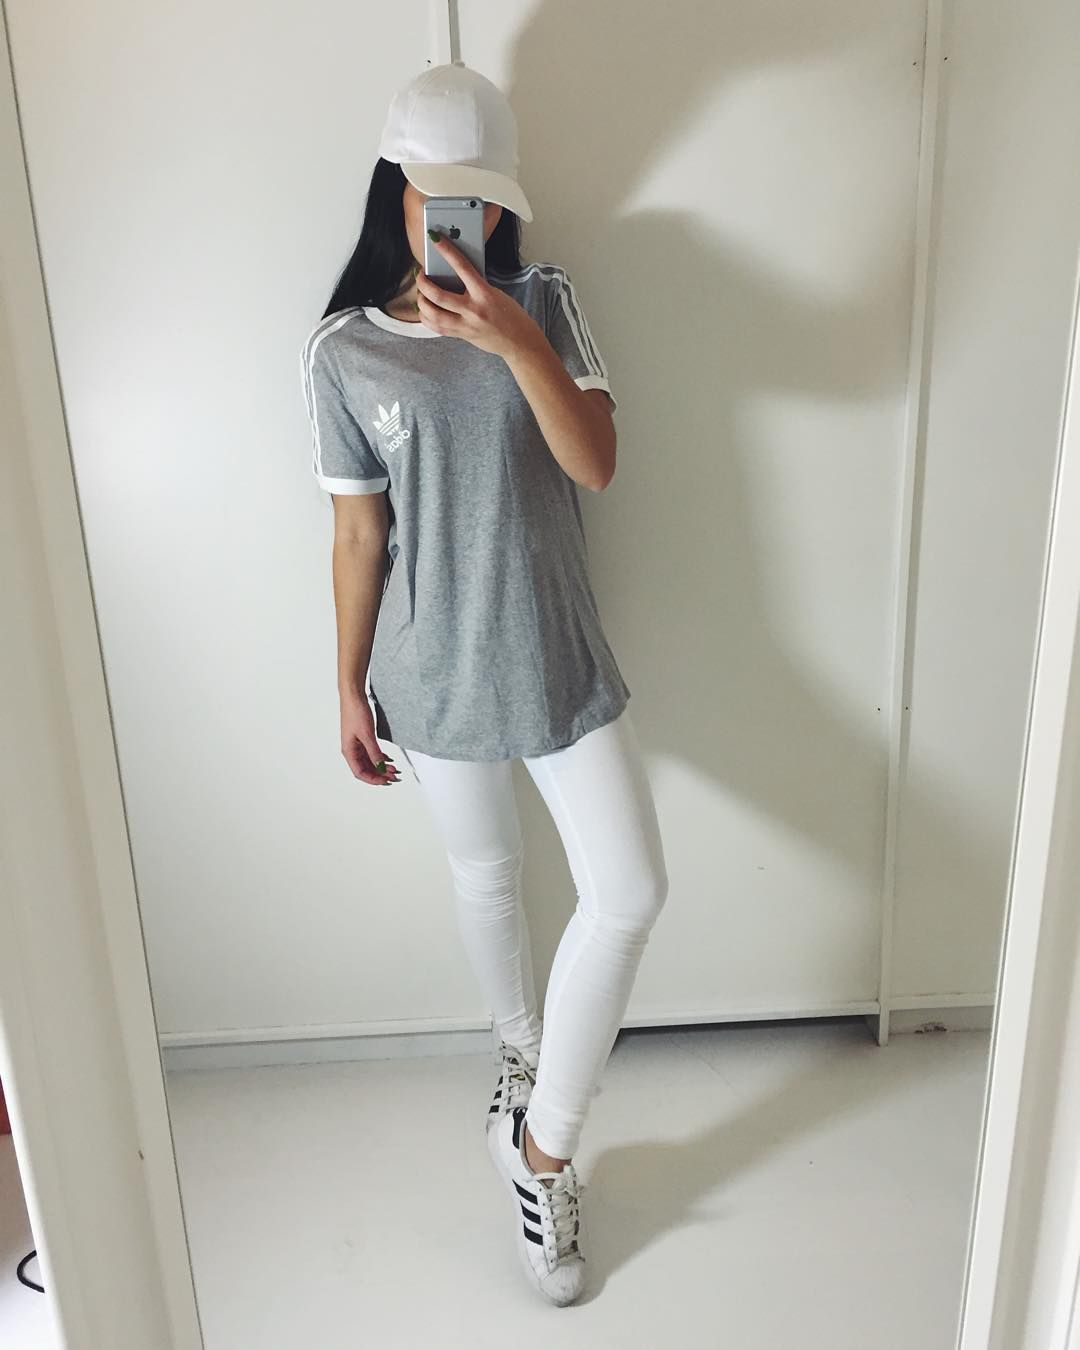 Girl Fashion Outfit Style Clothes Hair Lips Eyes Beauty Shoes High Heels Apparel Pinterest